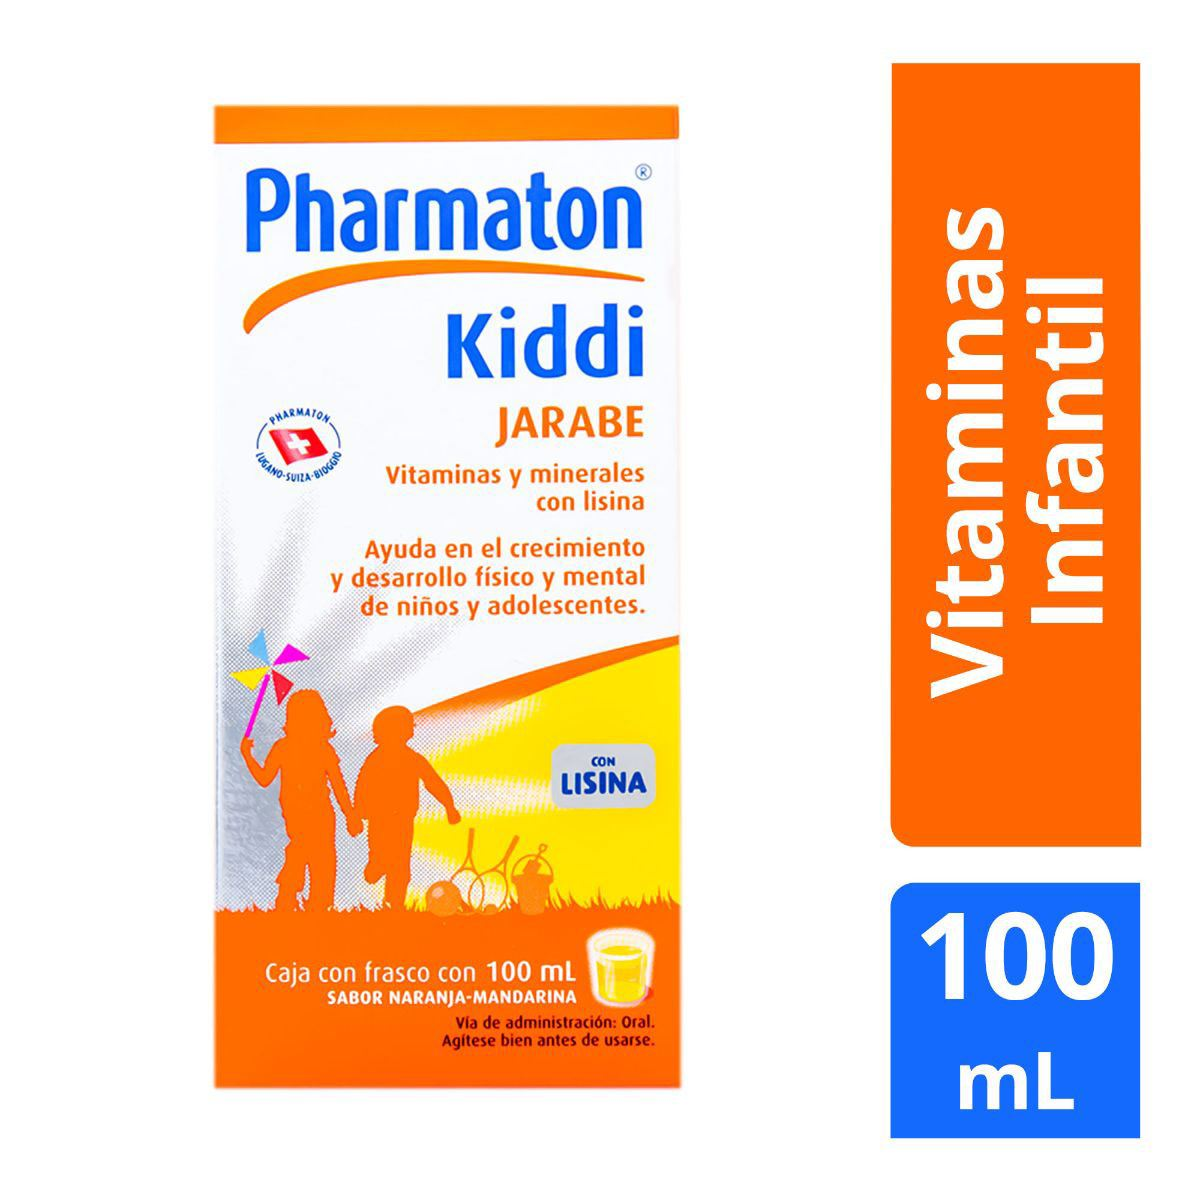 Kiddi pharmaton sabor naranja 100 ml  - Sanborns